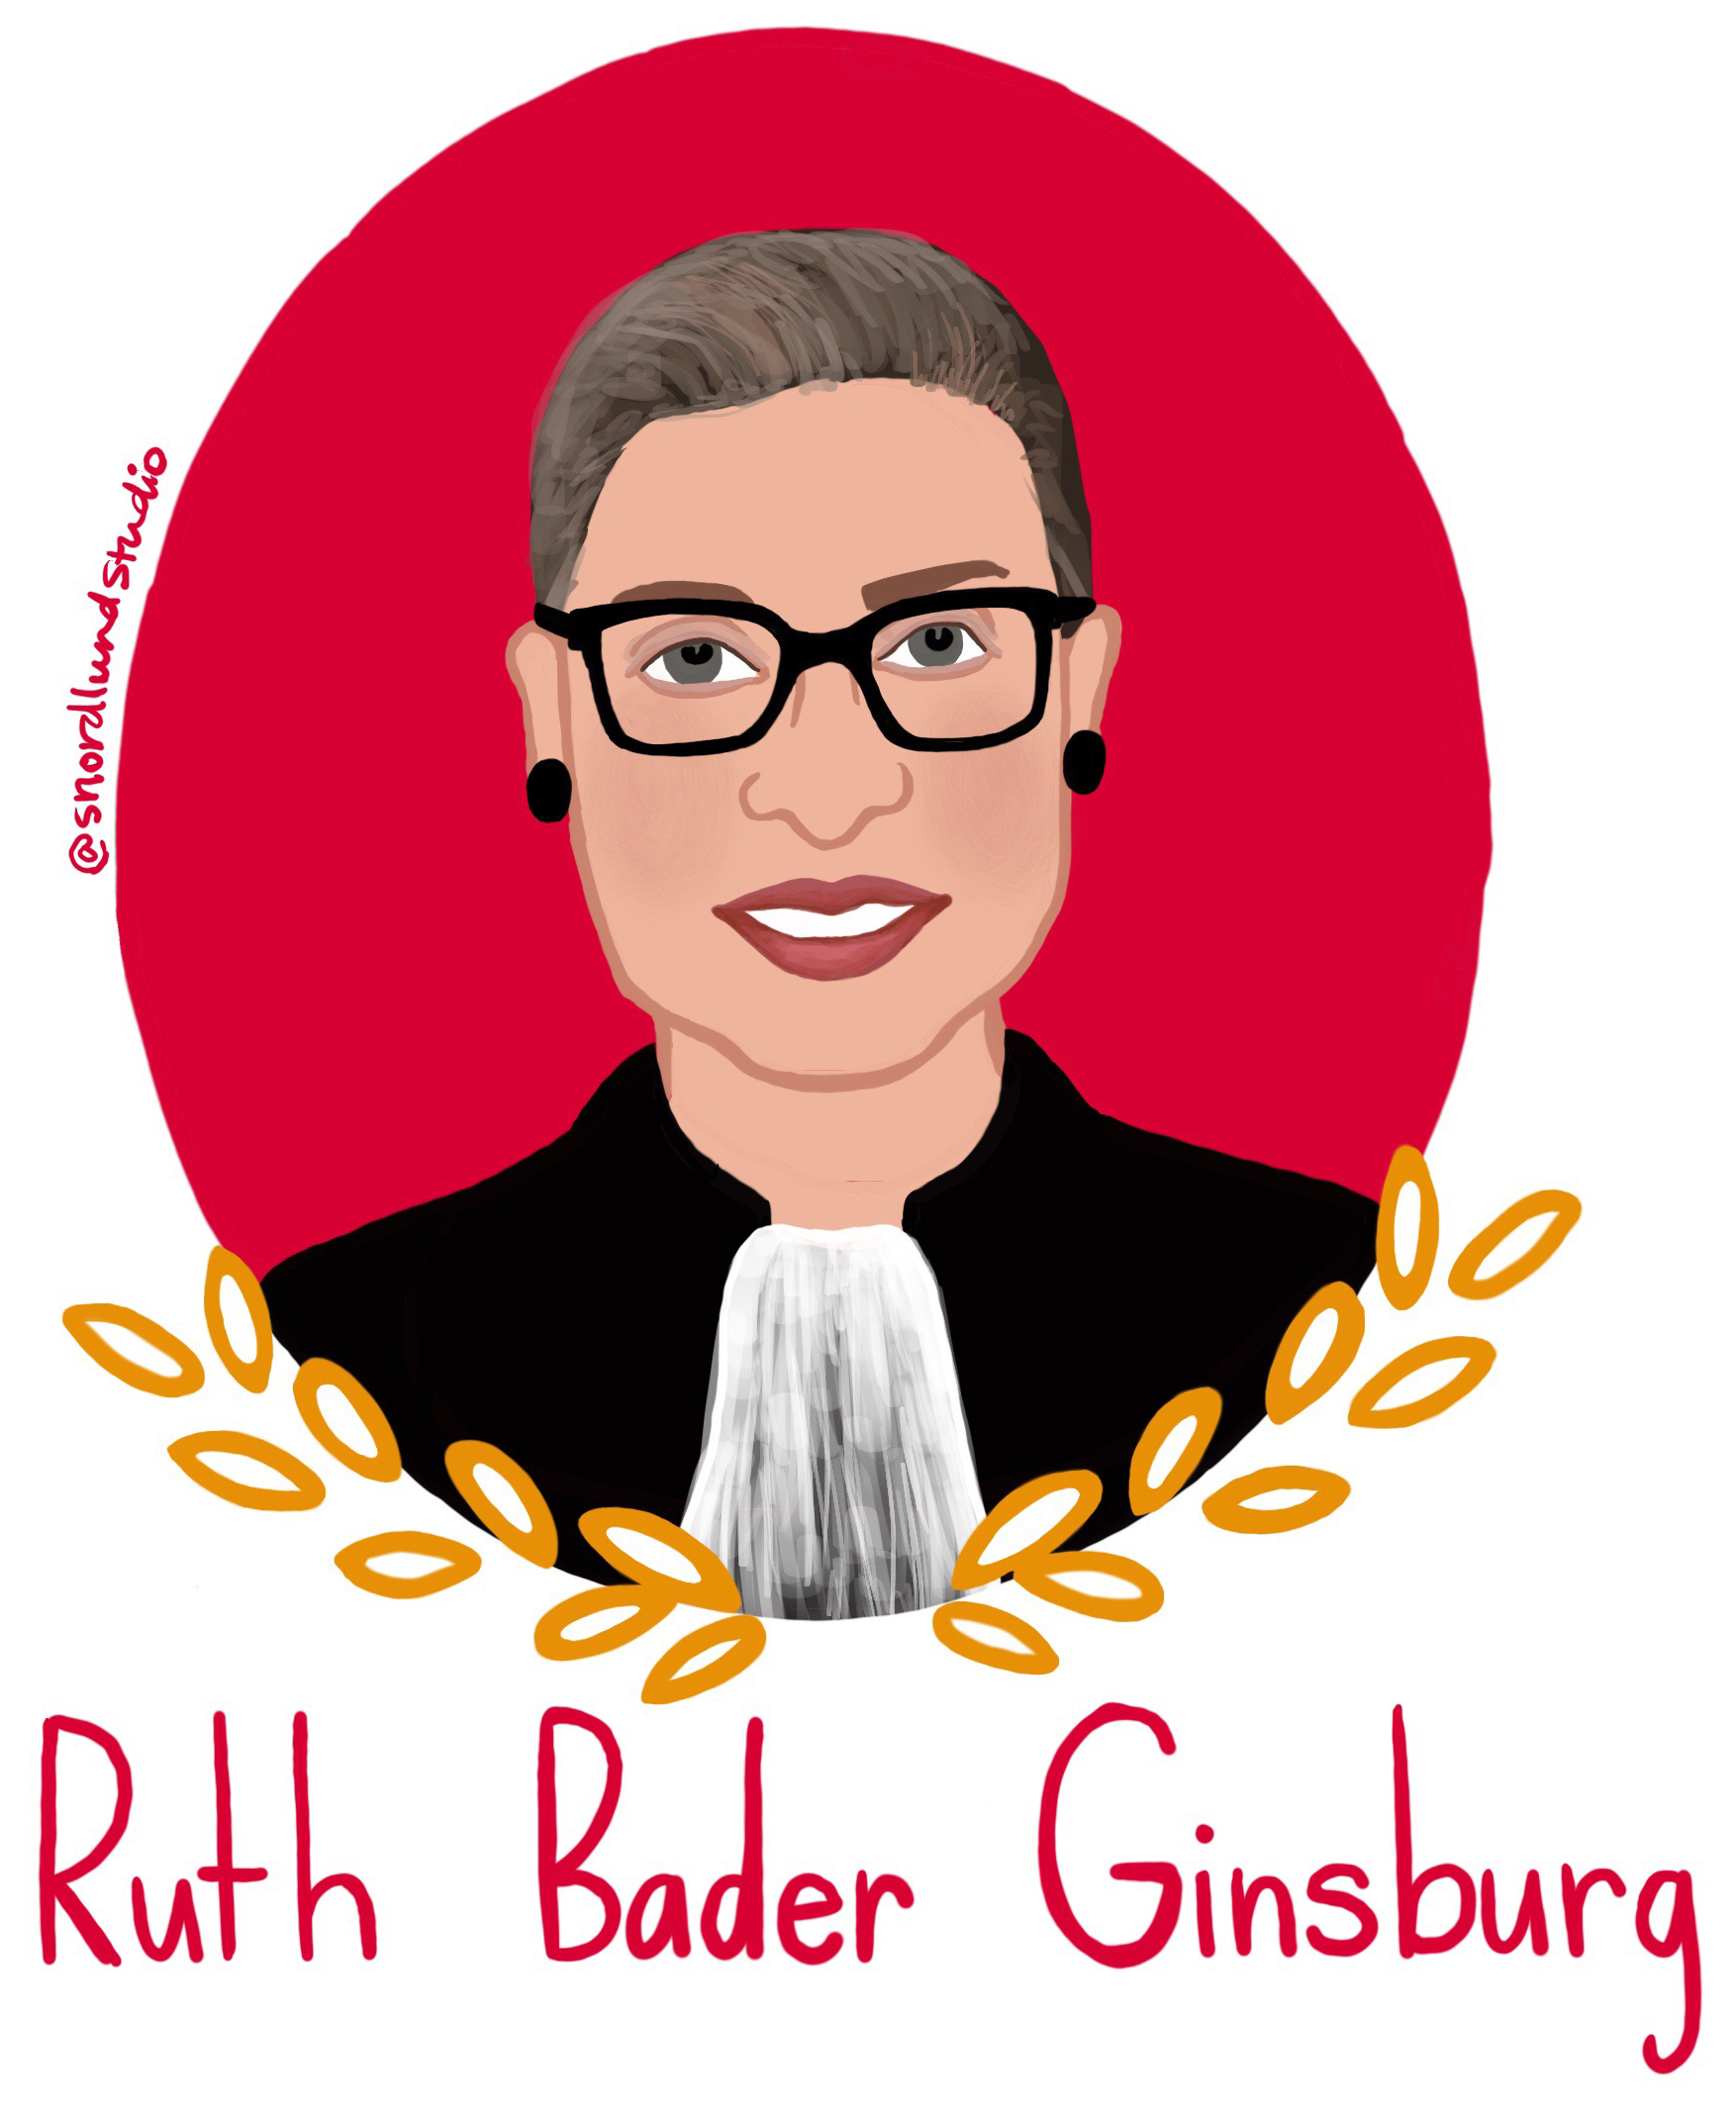 42. Ruth Bader Ginsburg - Ruth Bader Ginsburg is an Associate Justice of the Supreme Court, and she was the second female justice to be confirmed. Ginsburg studied law at Harvard while also being a wife and a mother. She actively fights for gender equality and women's rights.